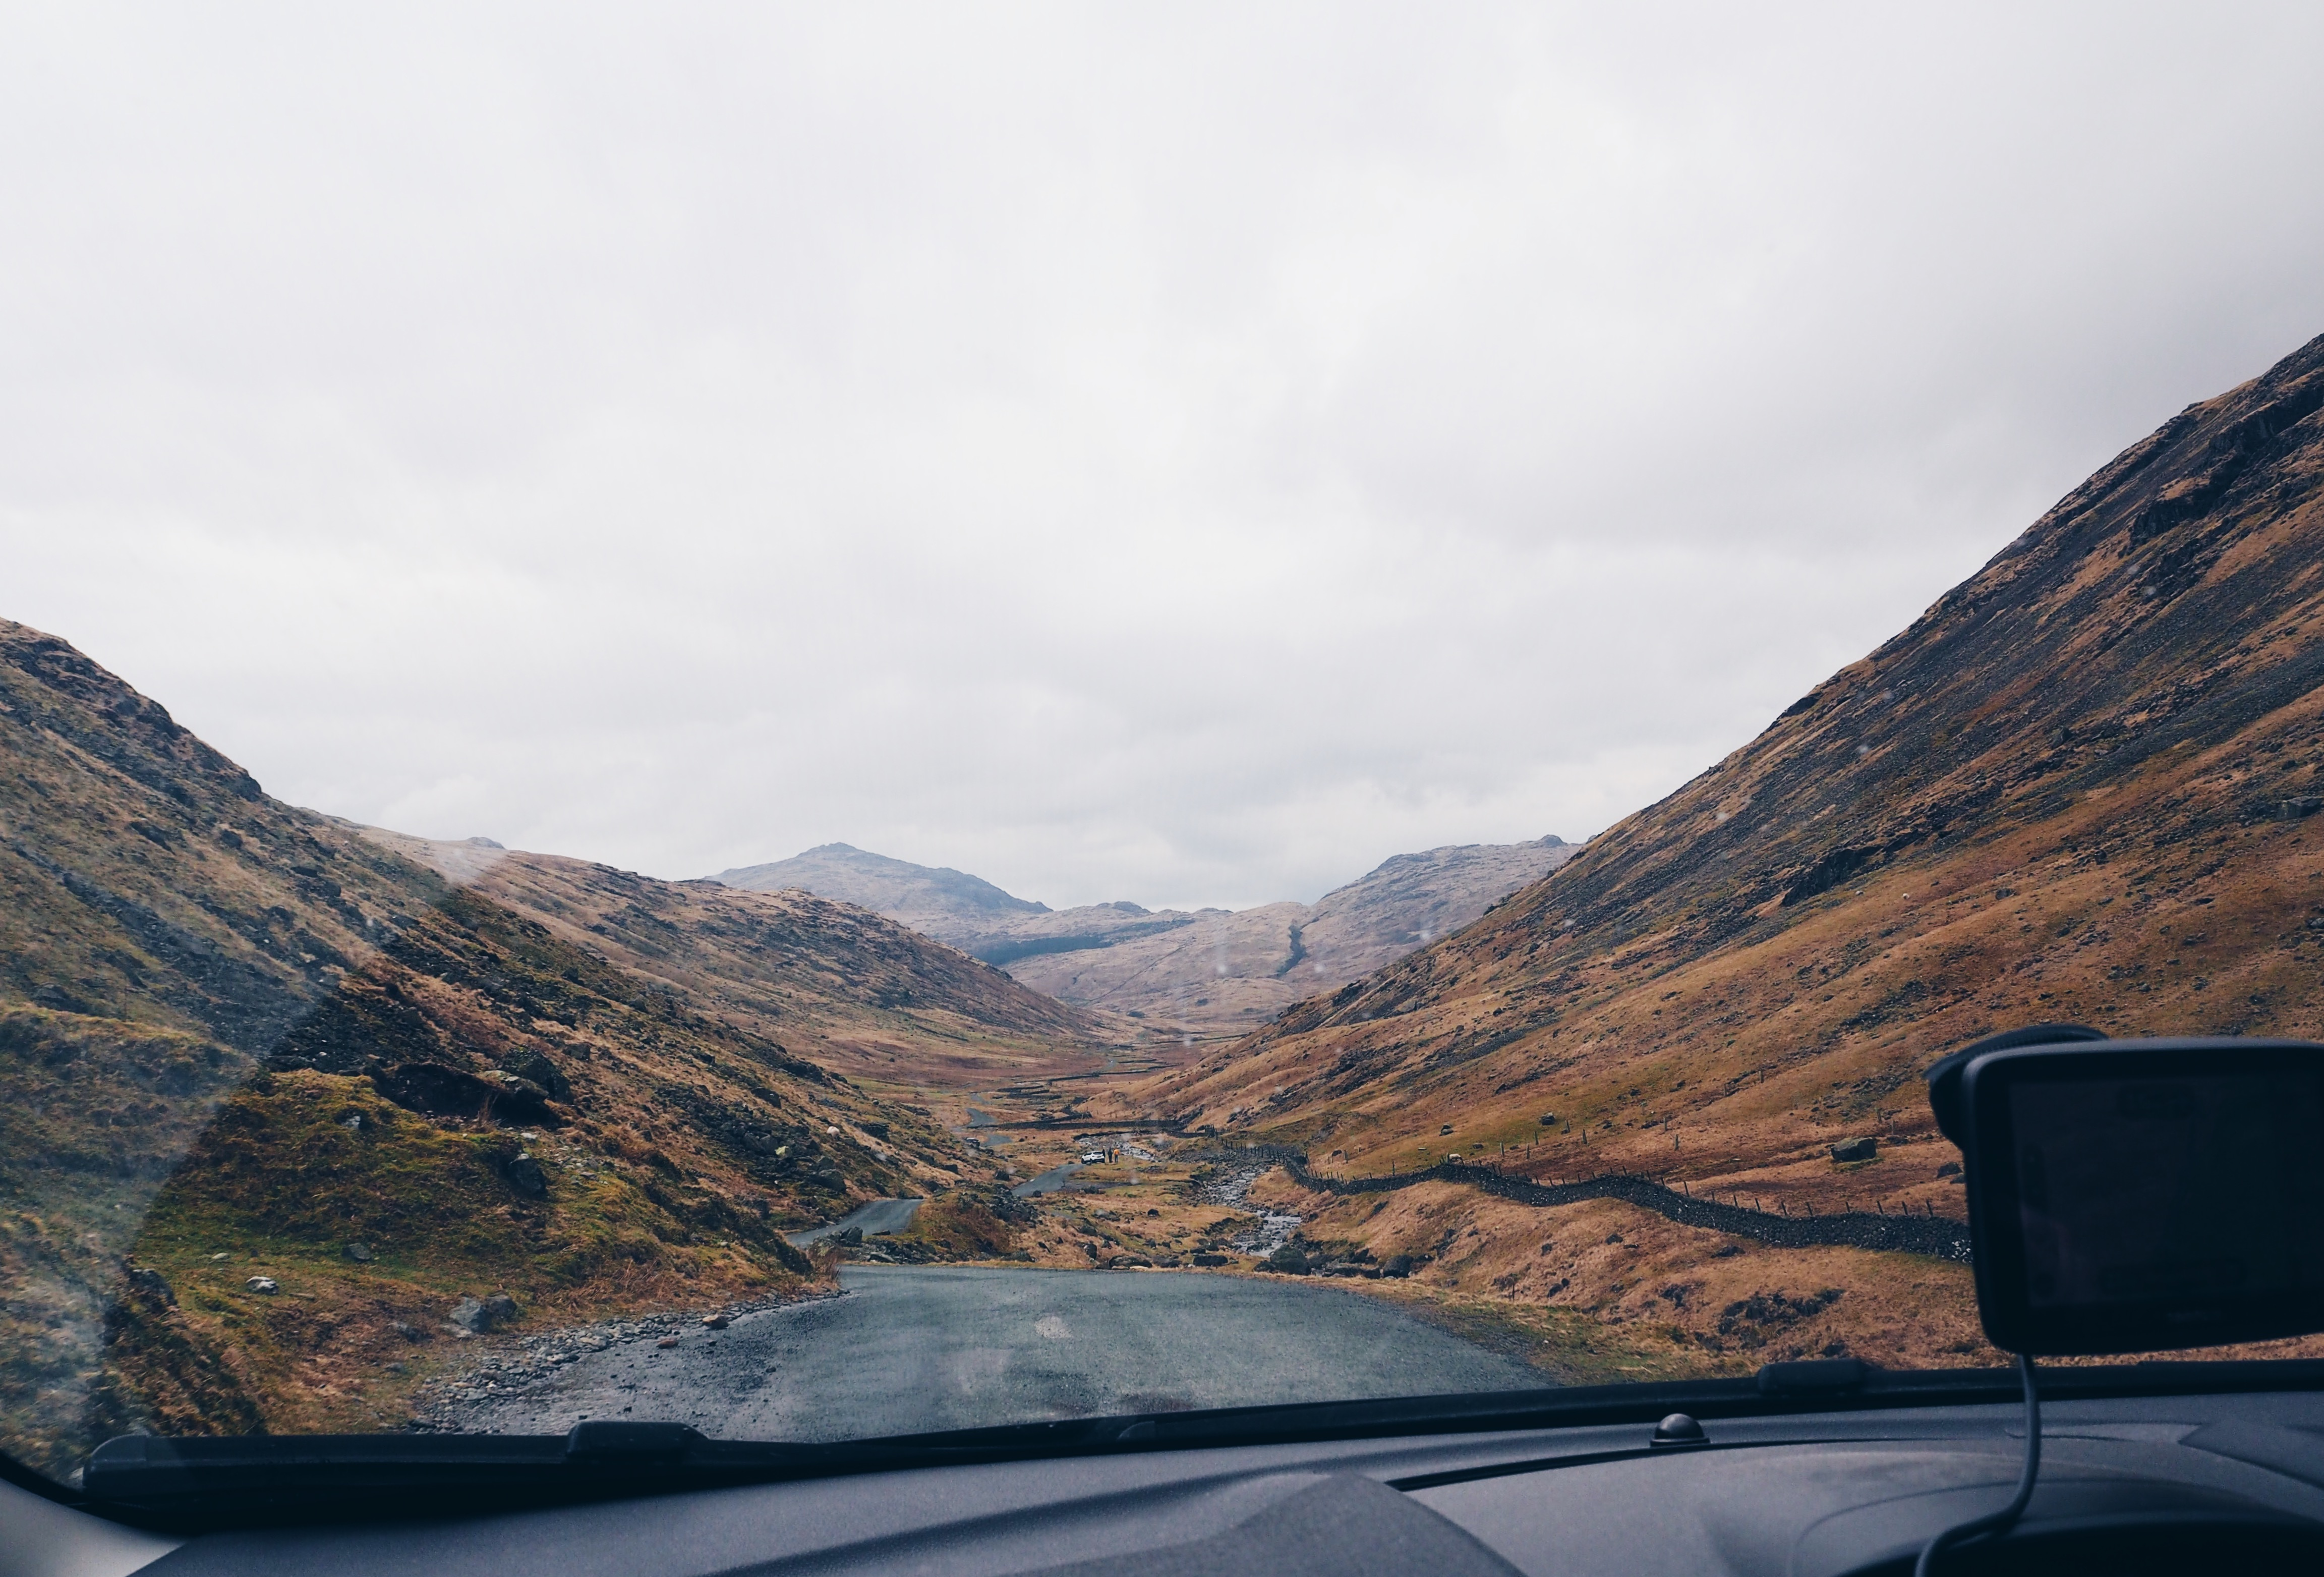 Lake district attractions Hardknott pass